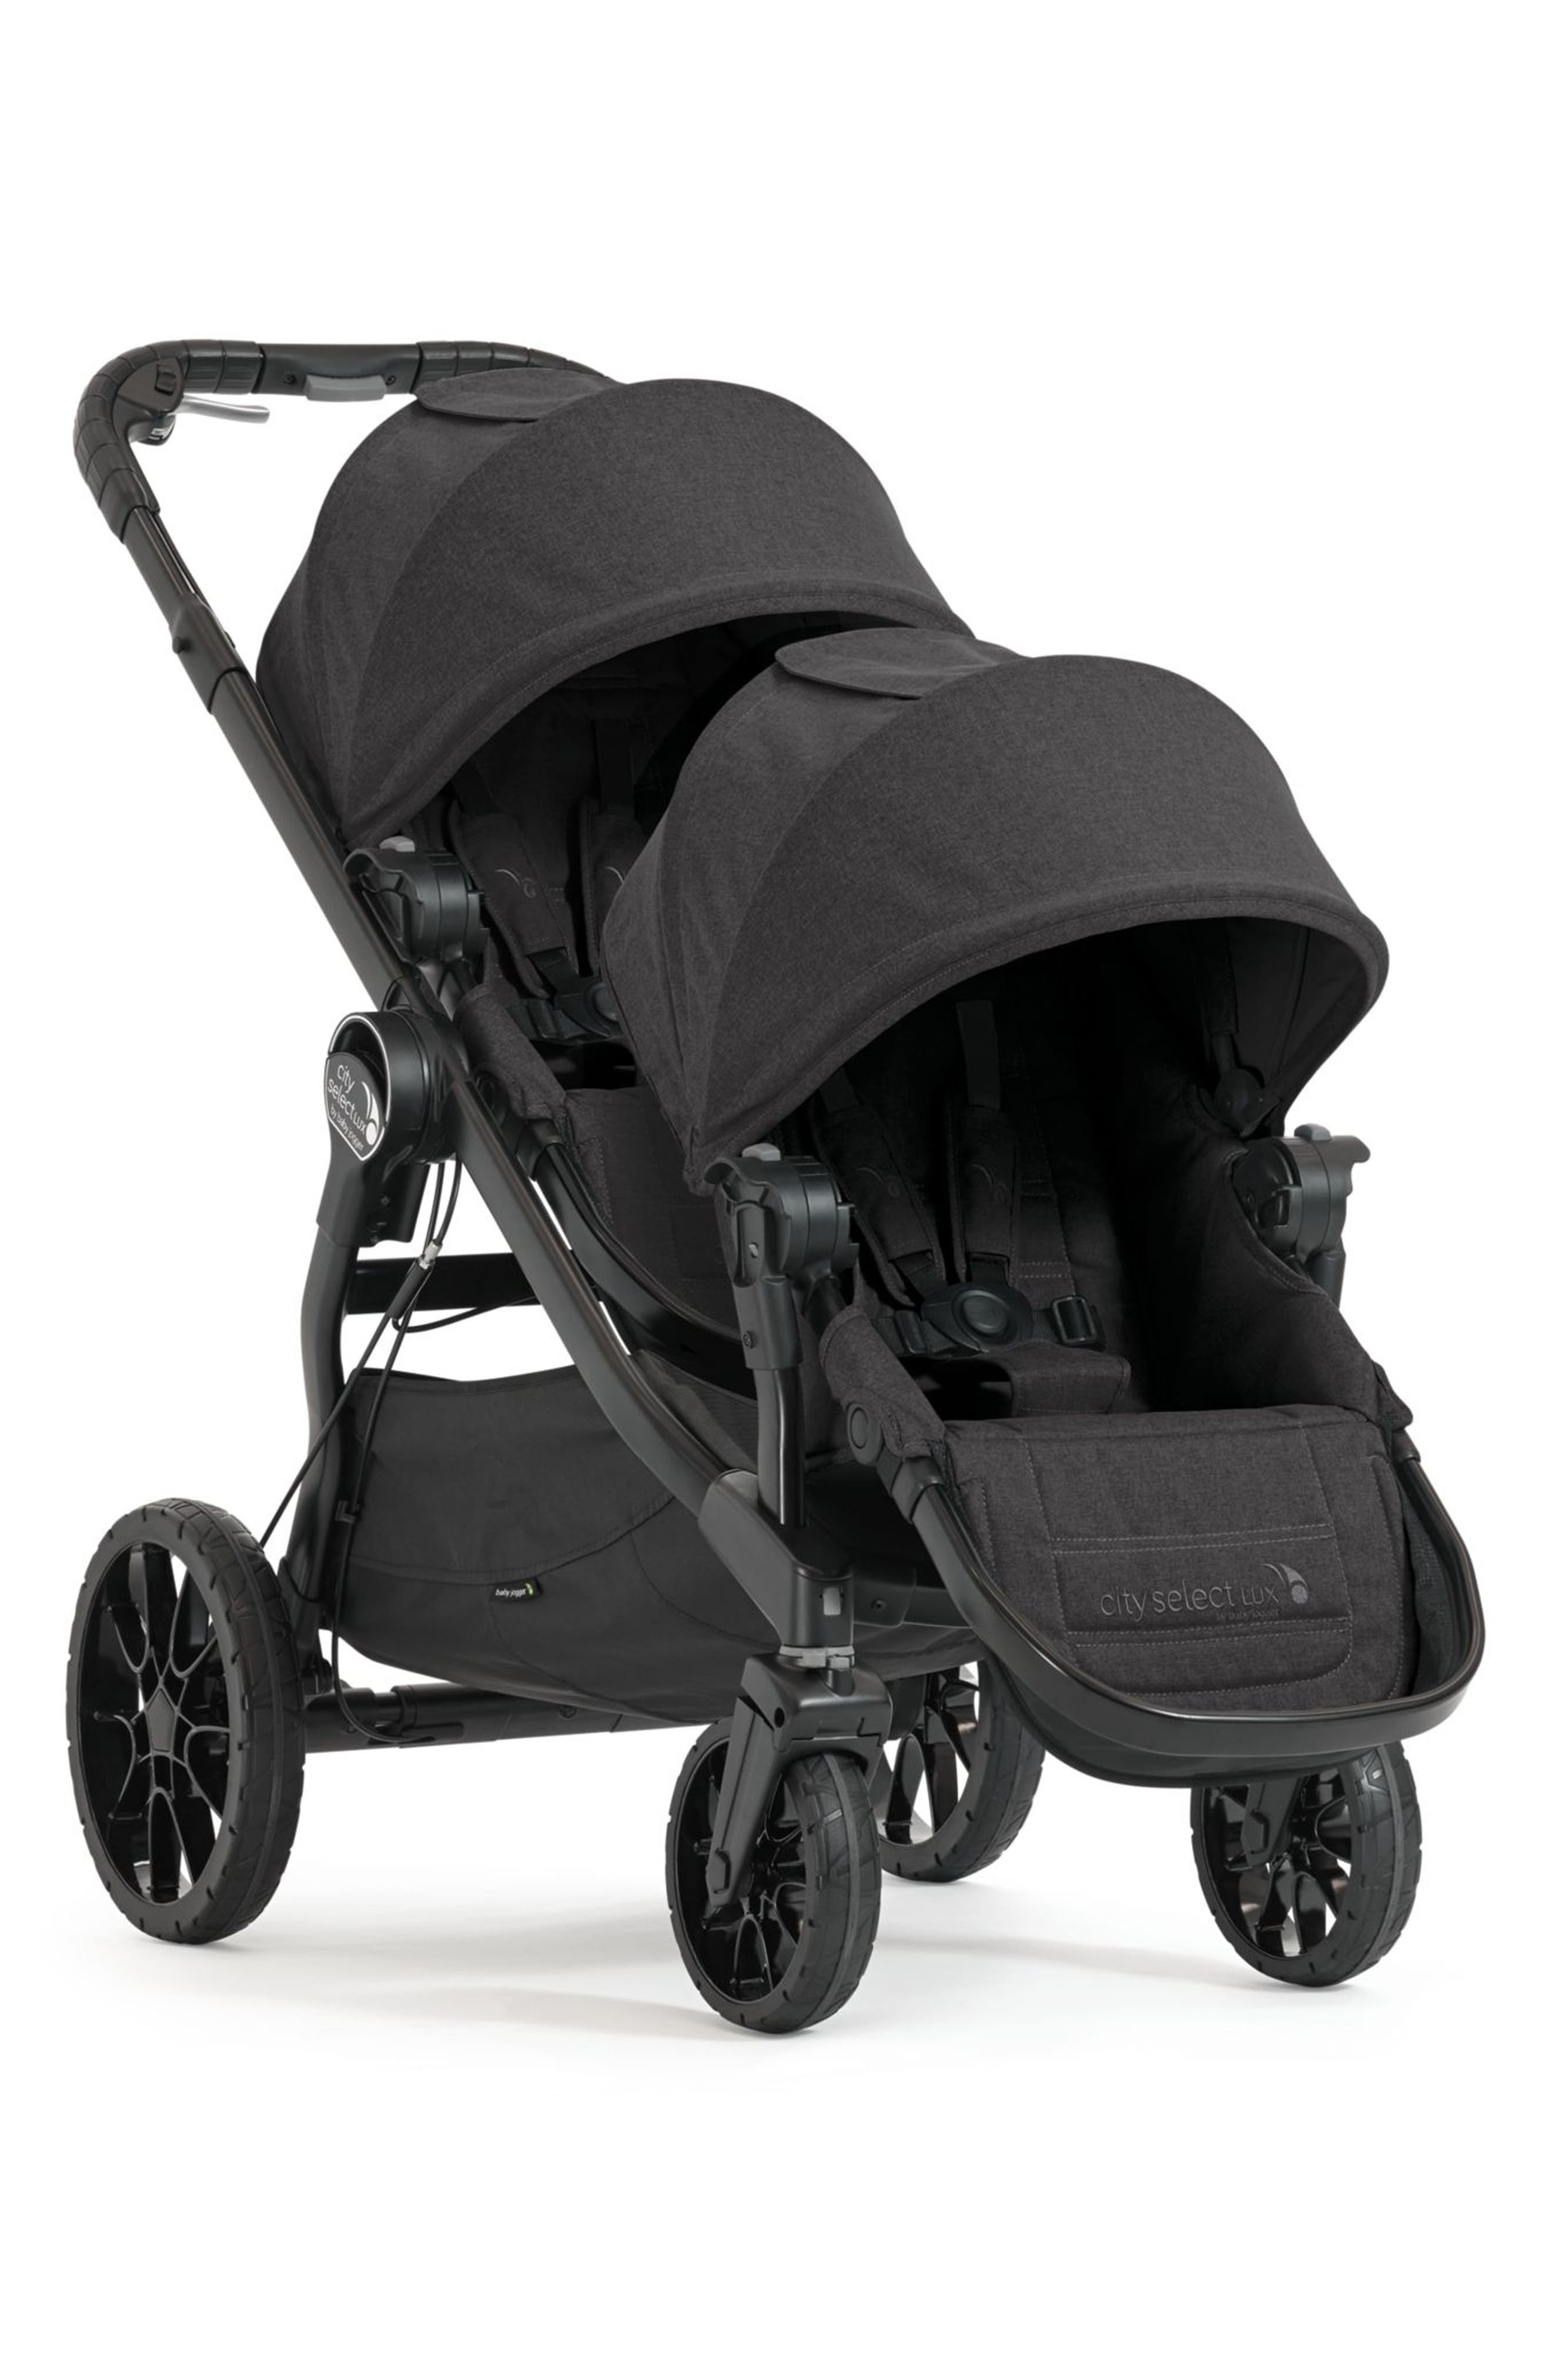 Second Seat for City Select LUX Stroller,                             Main thumbnail 1, color,                             Granite